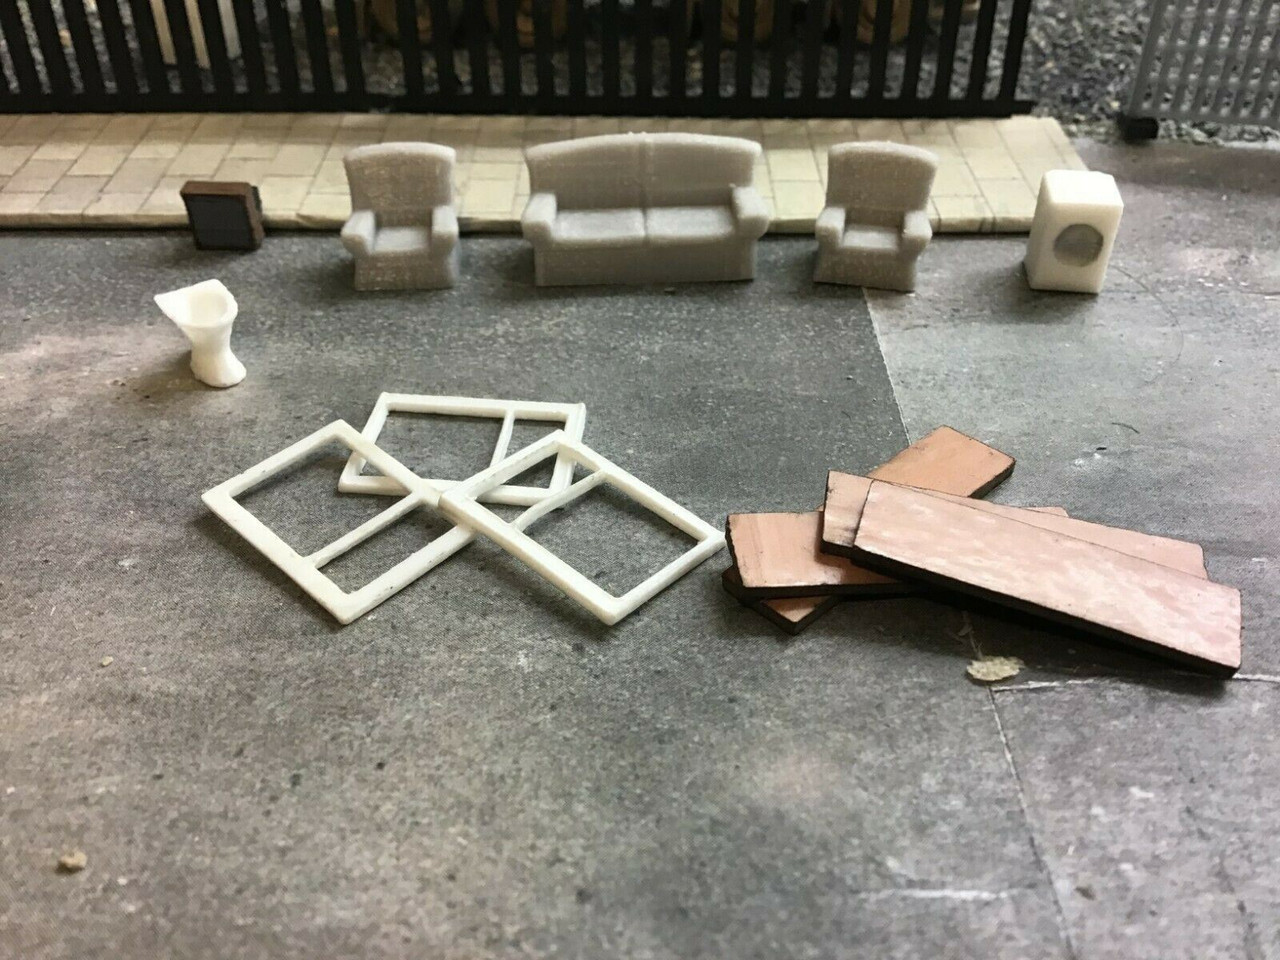 Lineside / Trackside Junk in OO Gauge / 1:76 scale